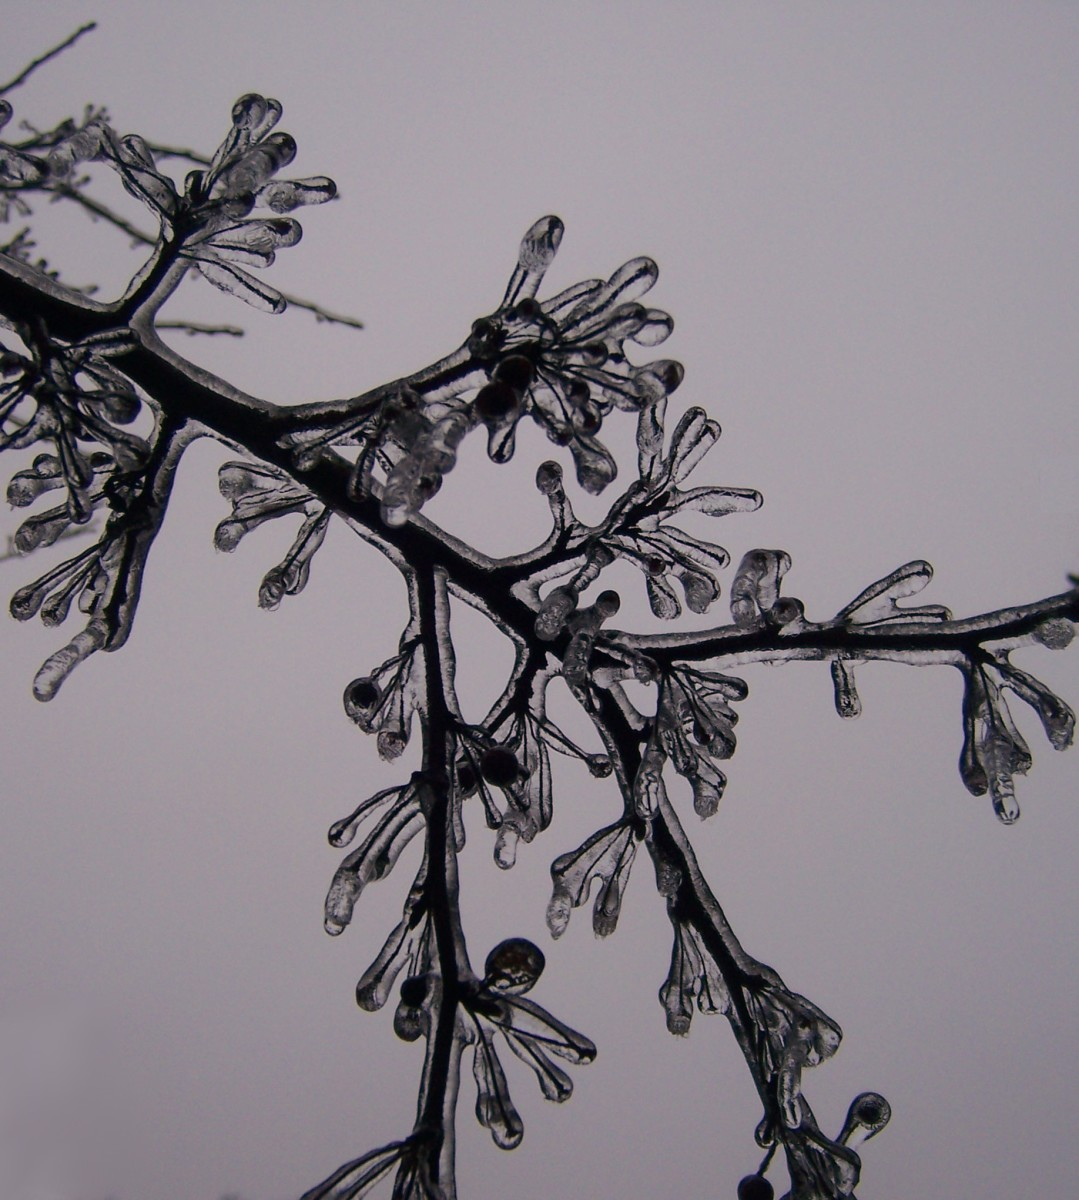 Ice builds up on an evergreen branch.